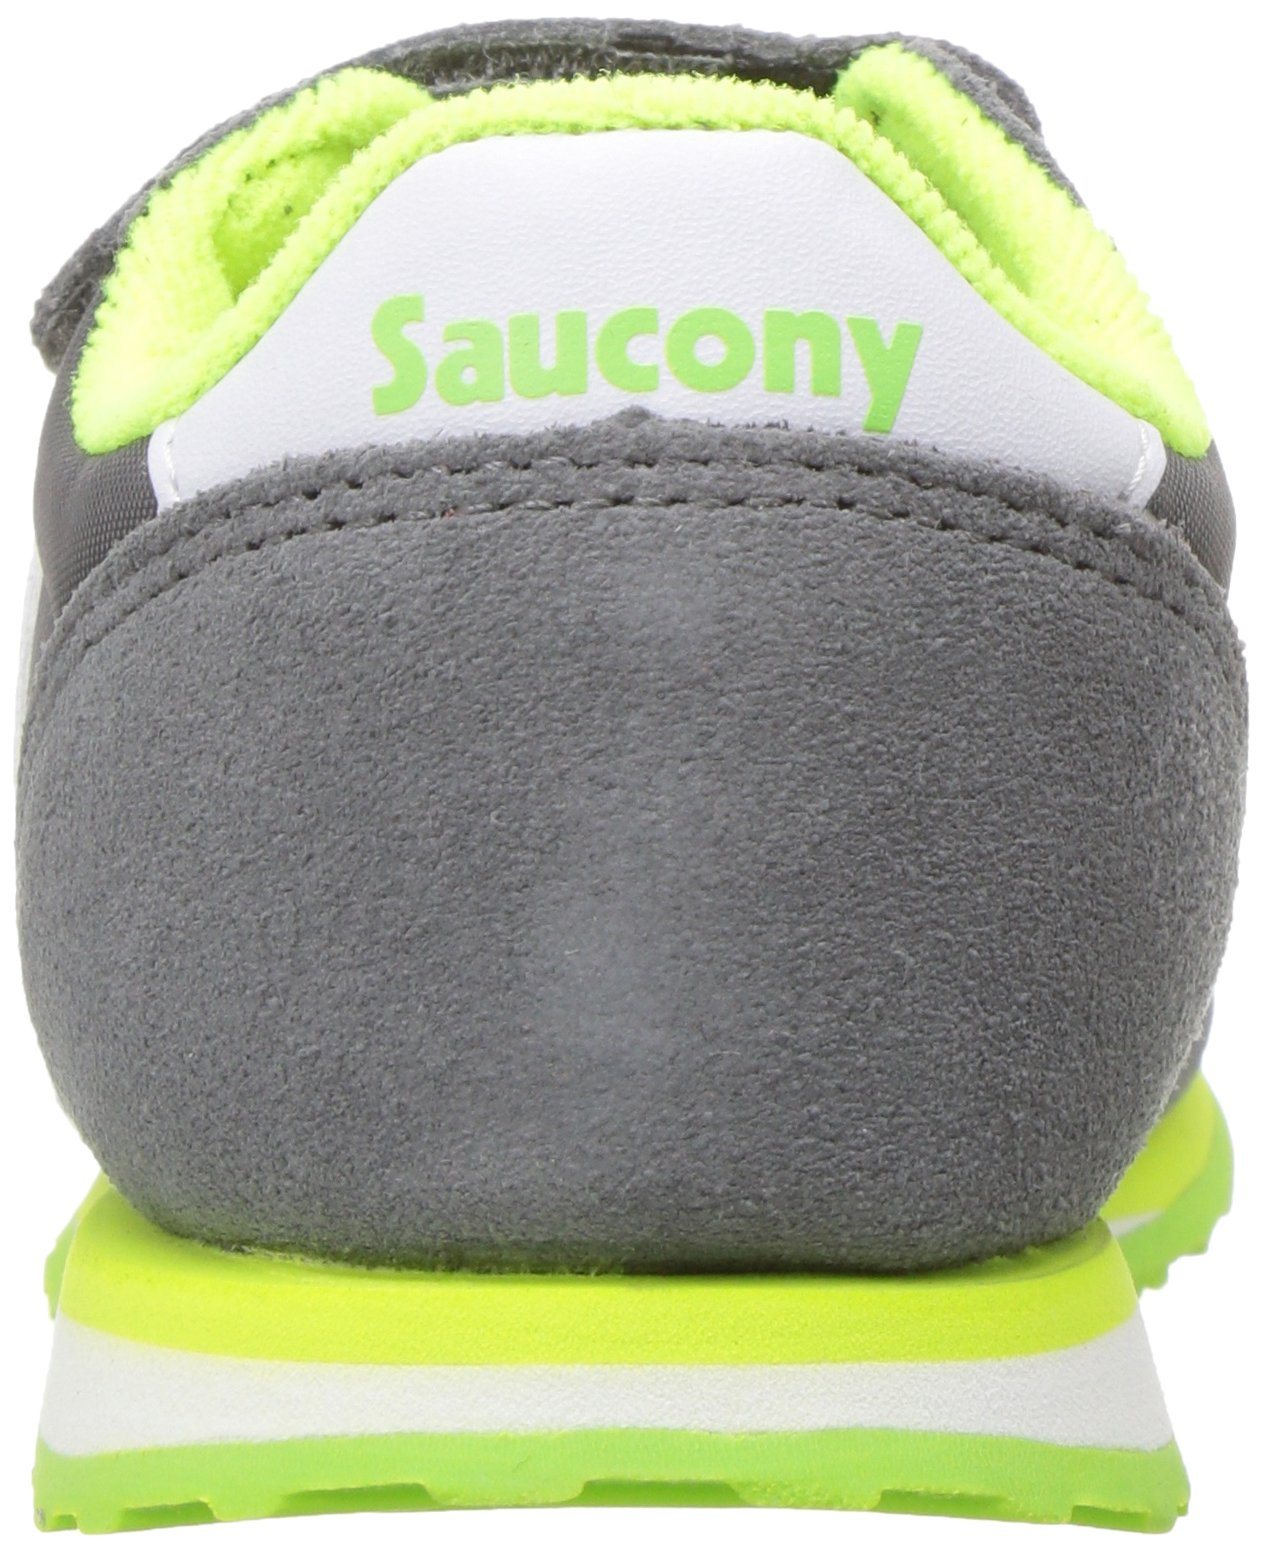 Saucony Baby Jazz Hook & Loop Sneaker Little Kid 6.5 Grey/White by Saucony (Image #2)